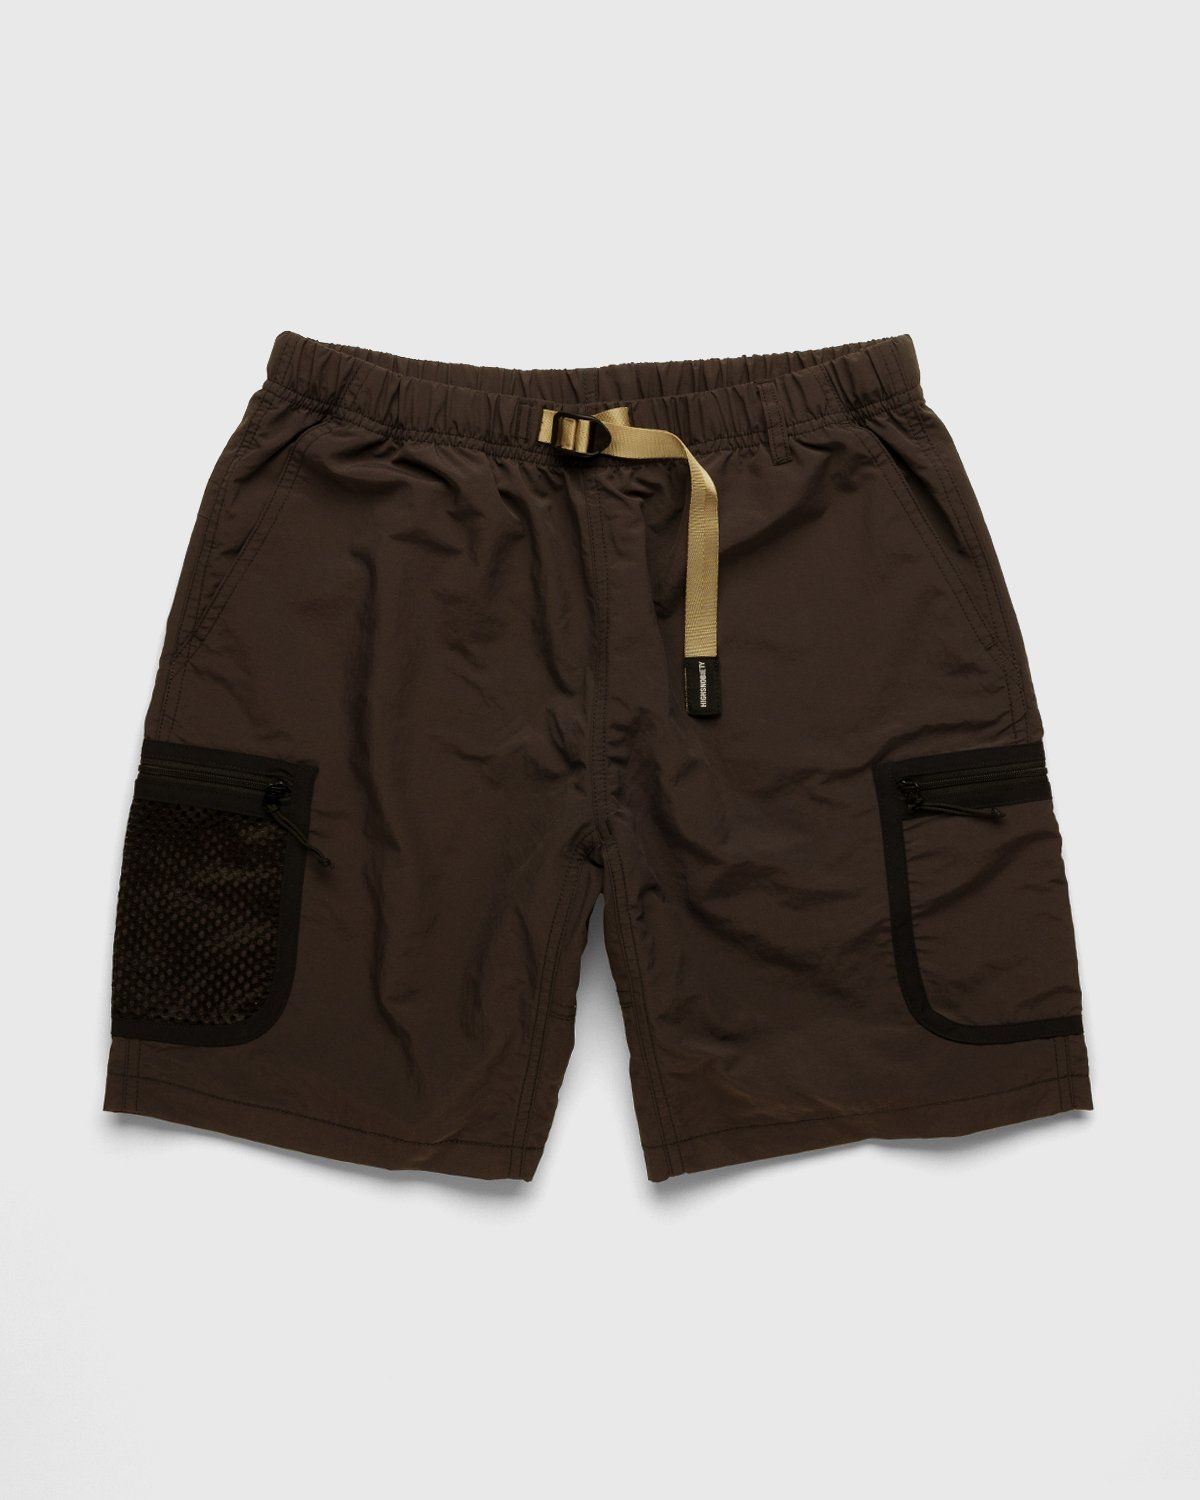 Gramicci for Highsnobiety – Shorts Brown - Image 1